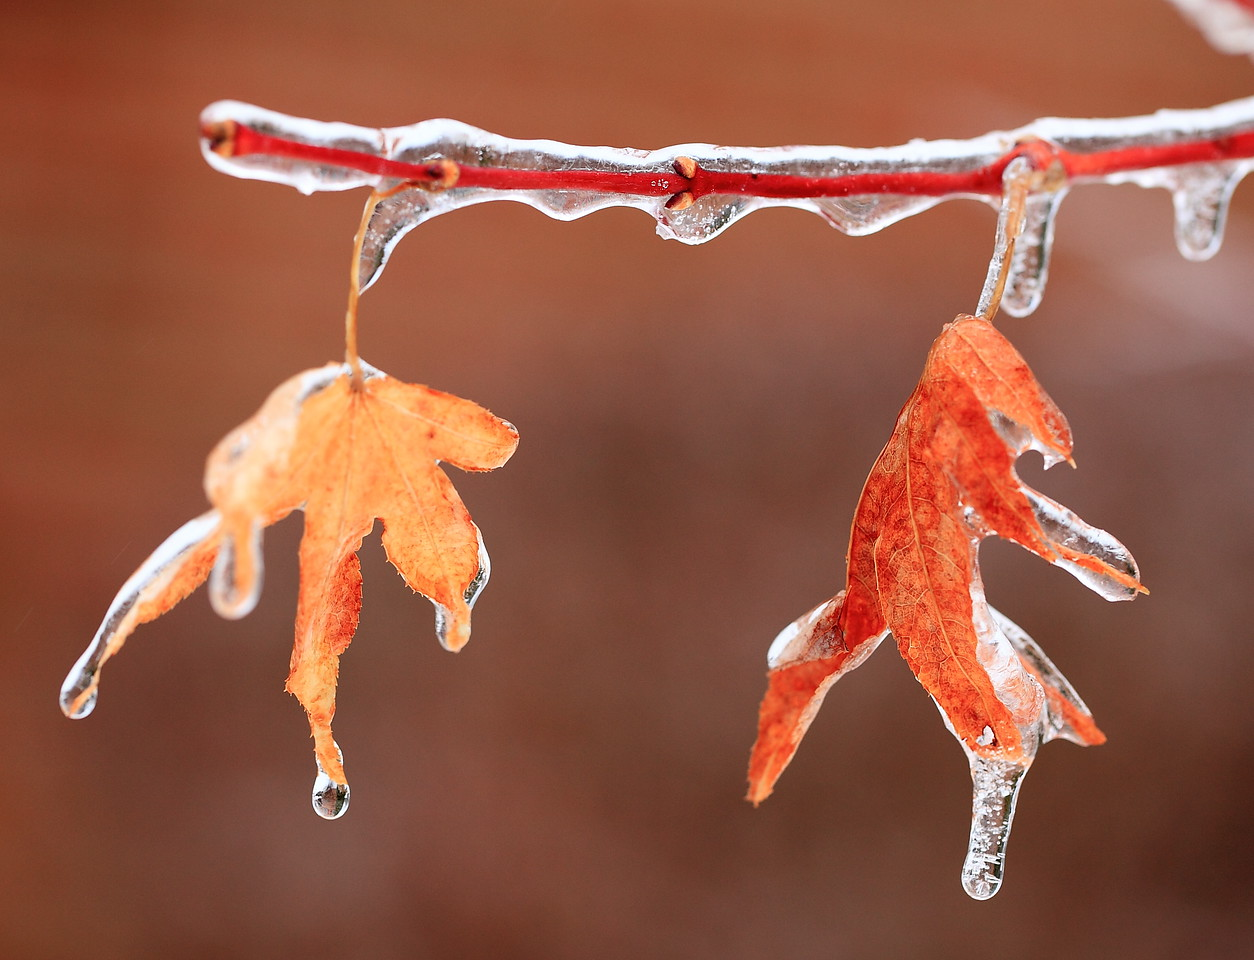 Japanese maple leaves in ice